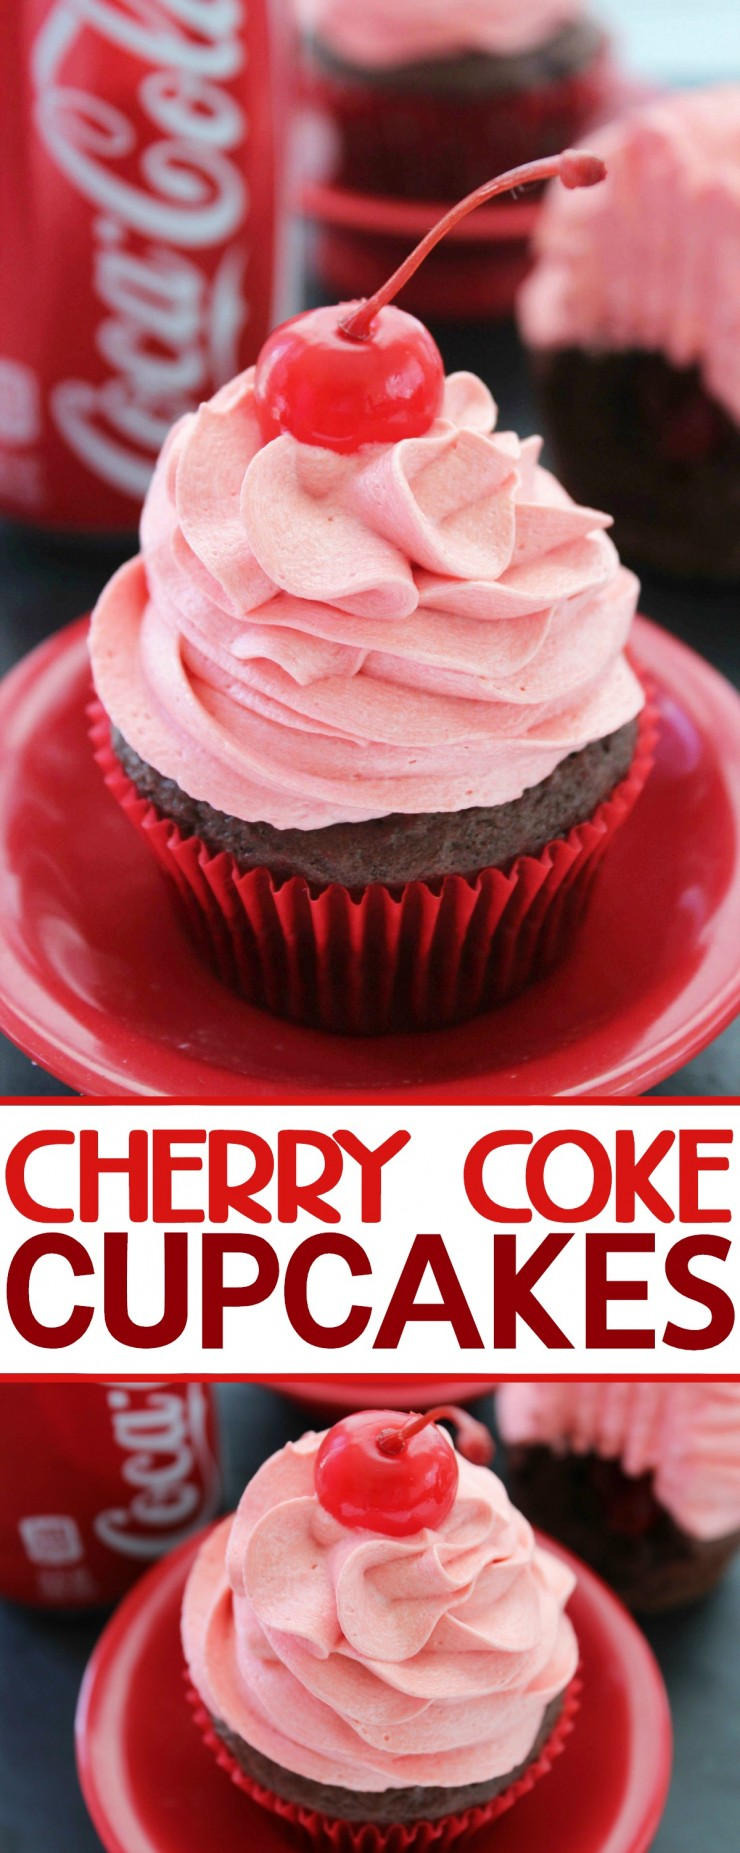 Capture all the flavours of Cherry Coke with these scrumptious Cherry Coke Cupcakes!